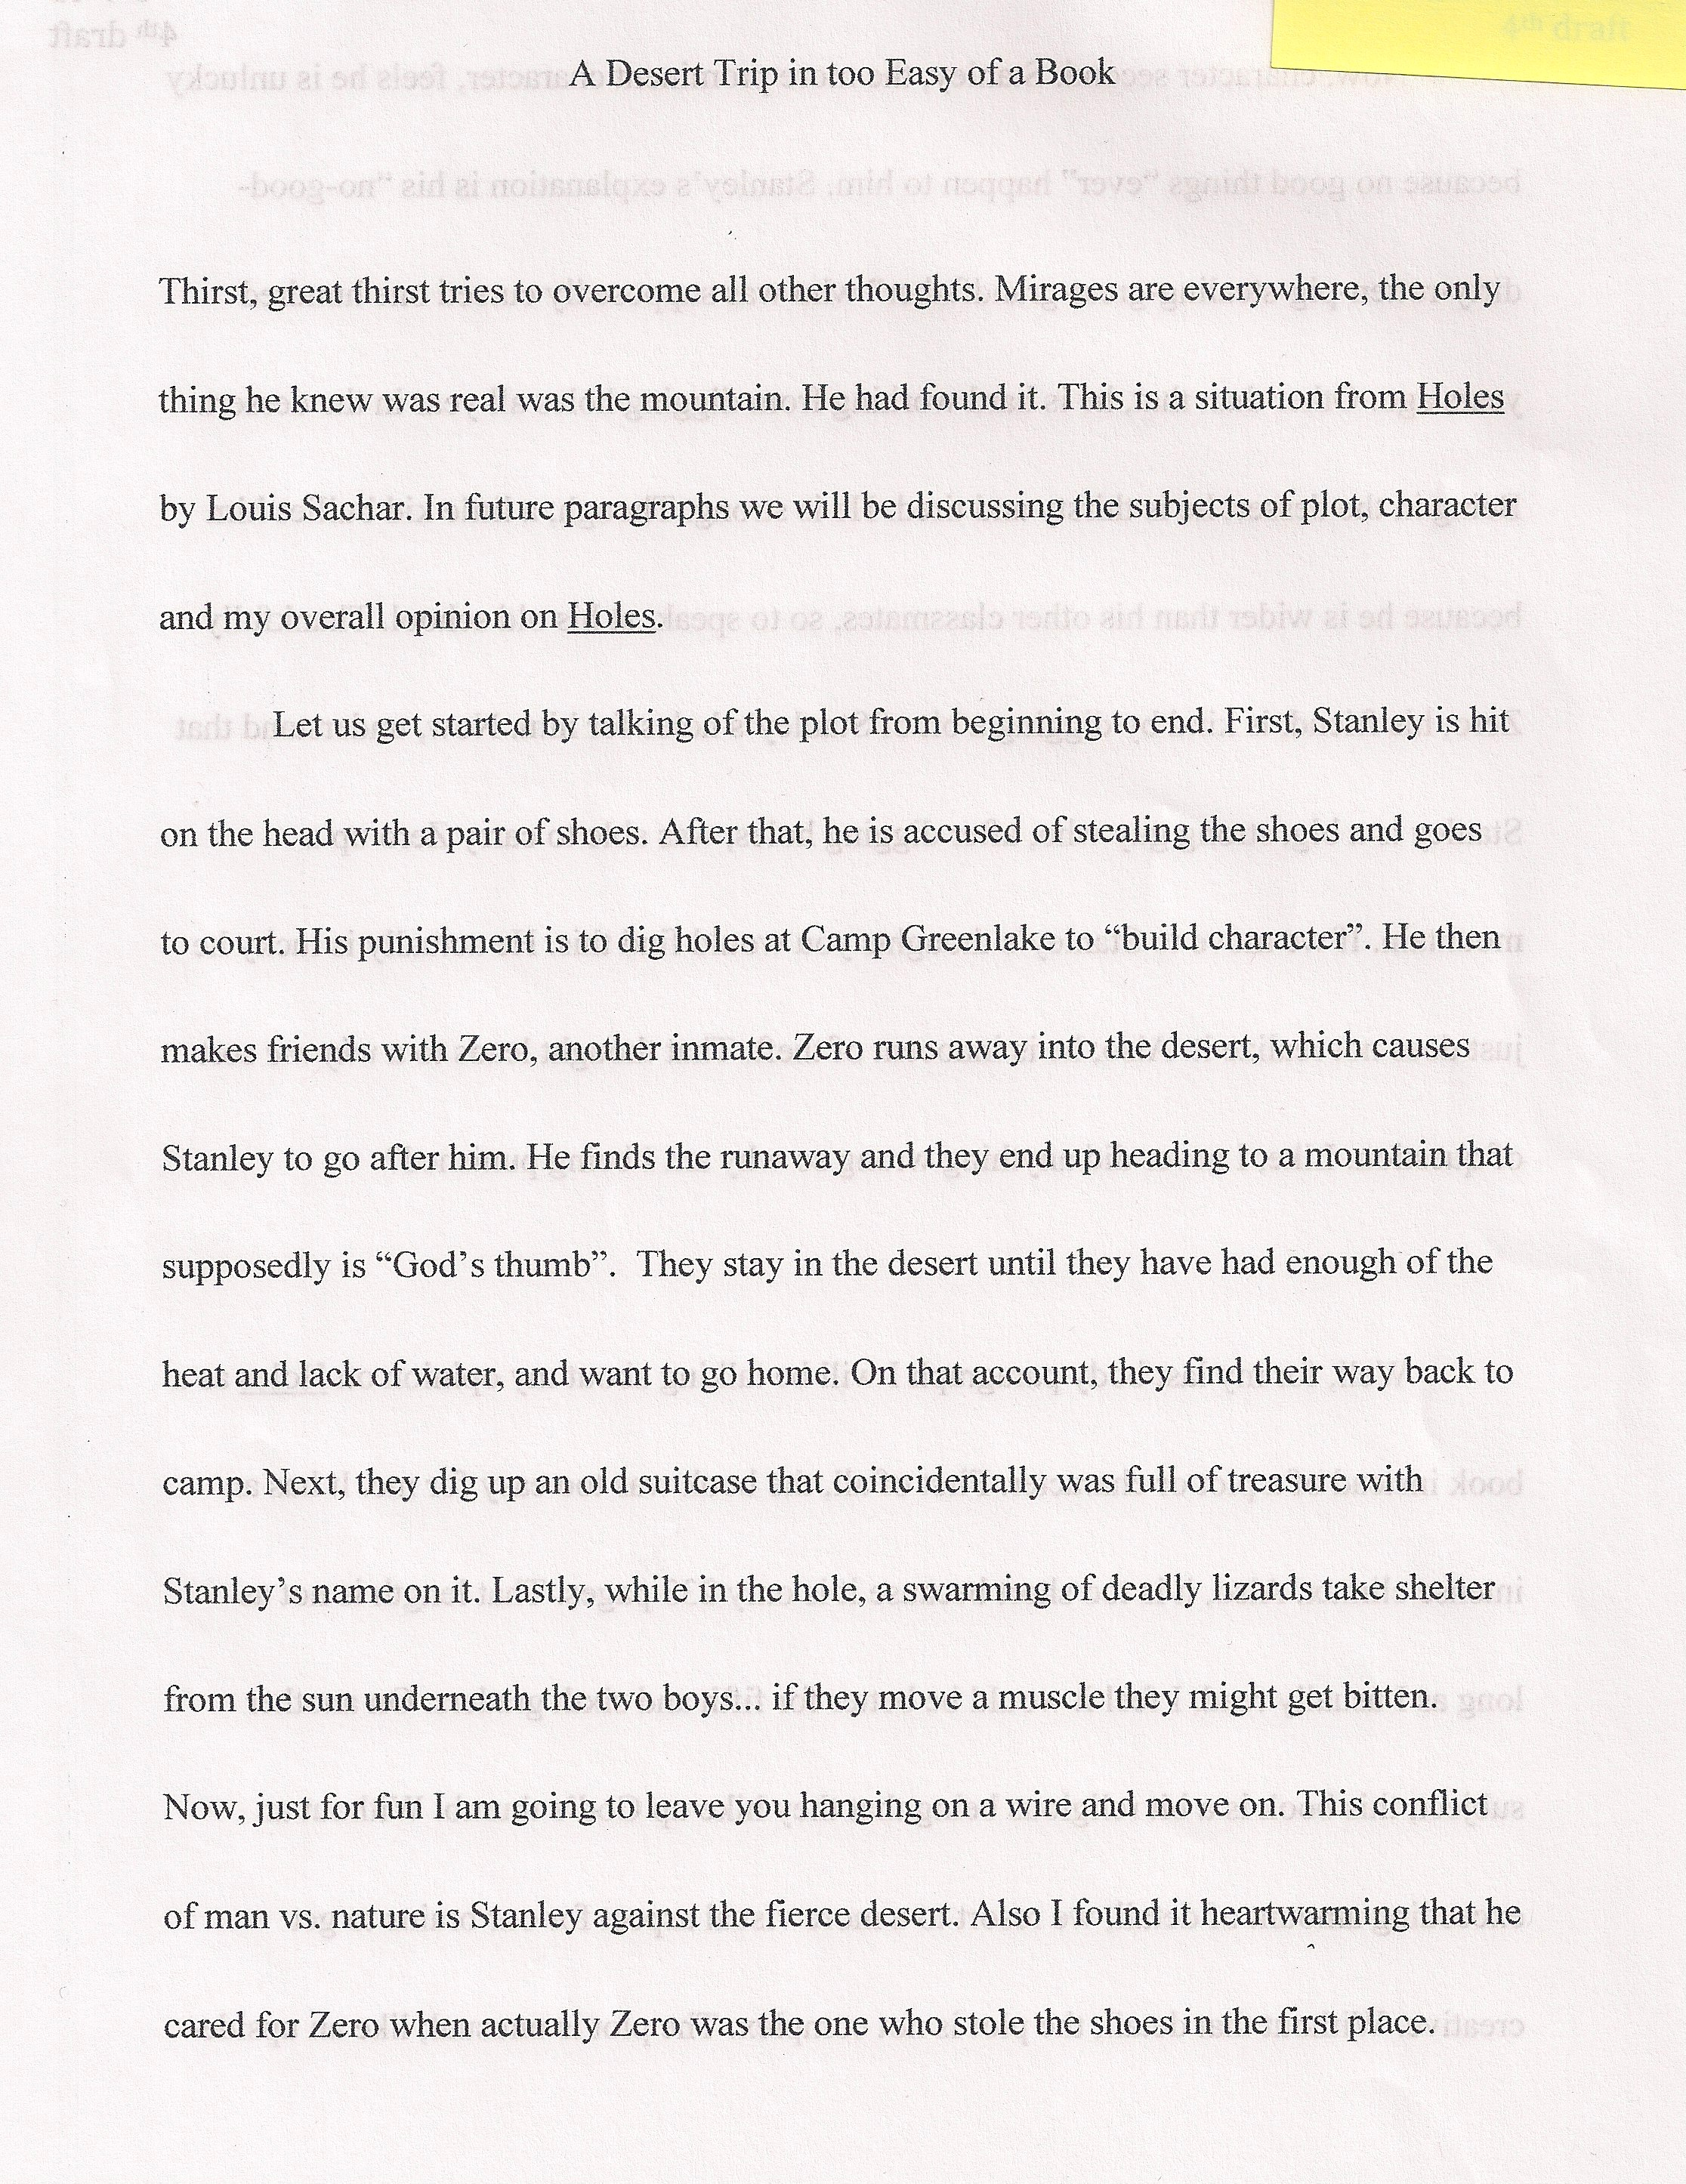 023 Essay Example Inspiration Sixth Grade Writing Prompts Persuasive With 7th Madrat Of Rare Argumentative Topics For Graders College High School Pdf Full